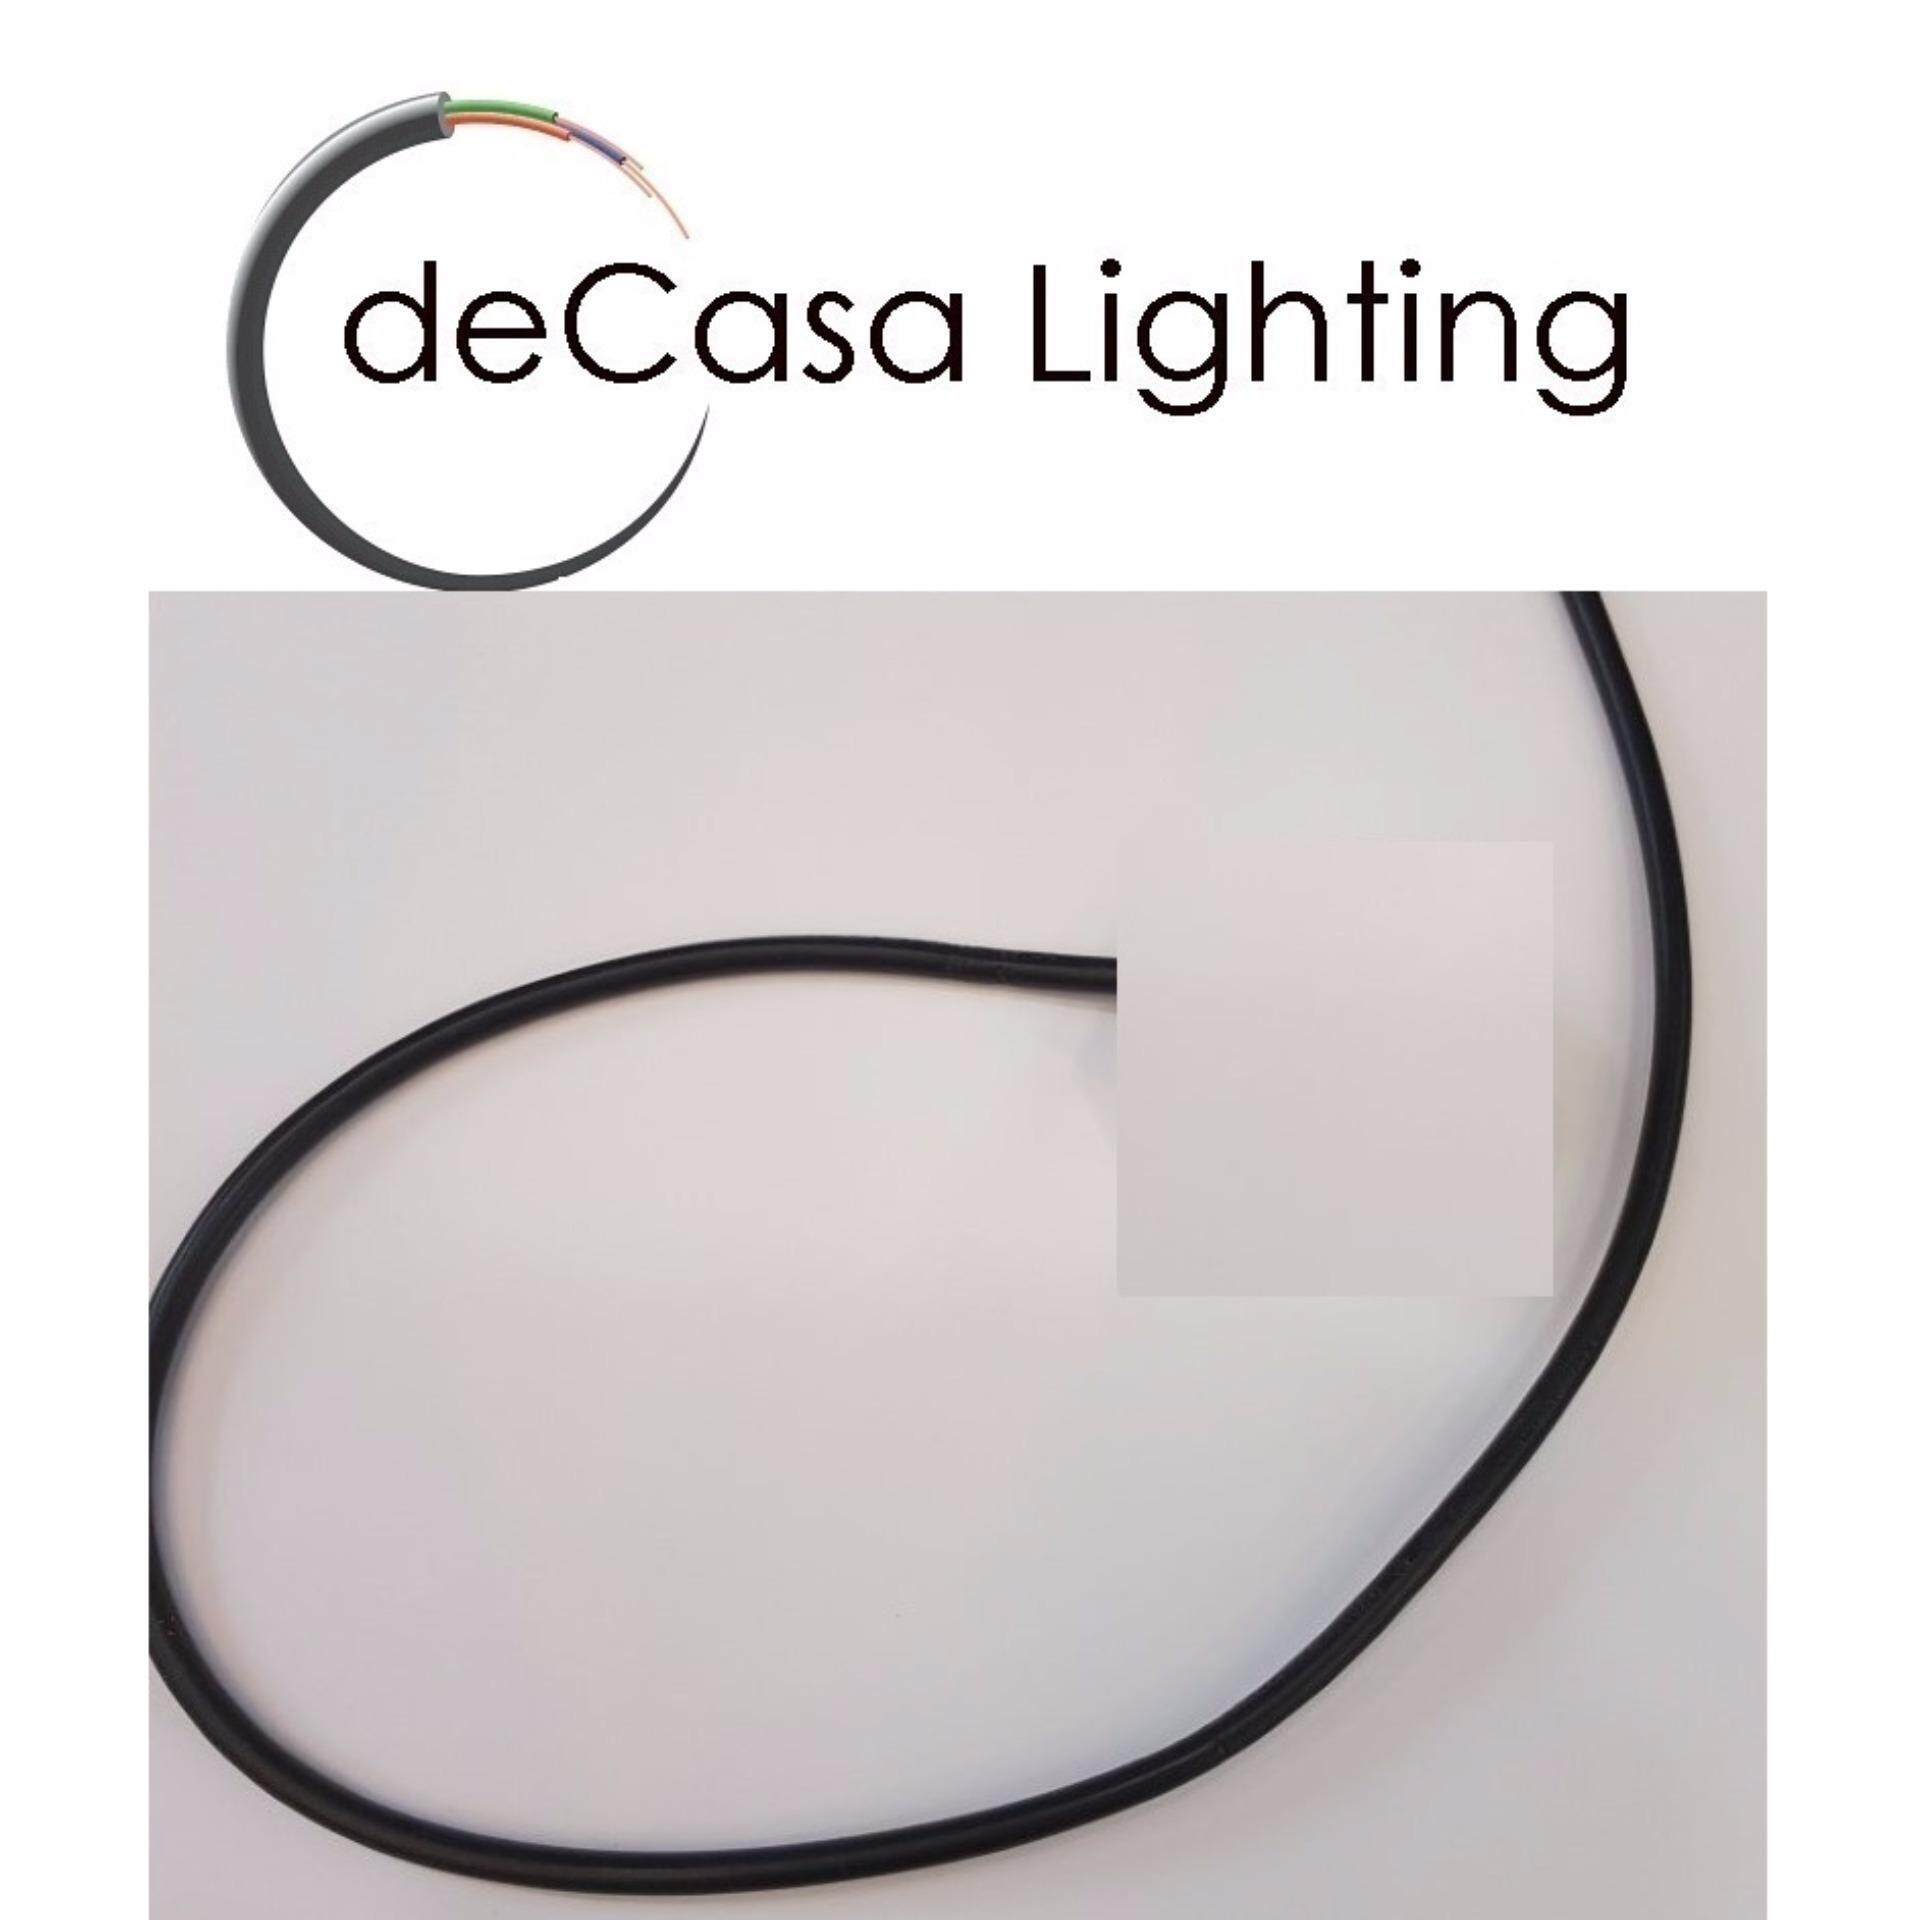 Decasa 2 meter wire